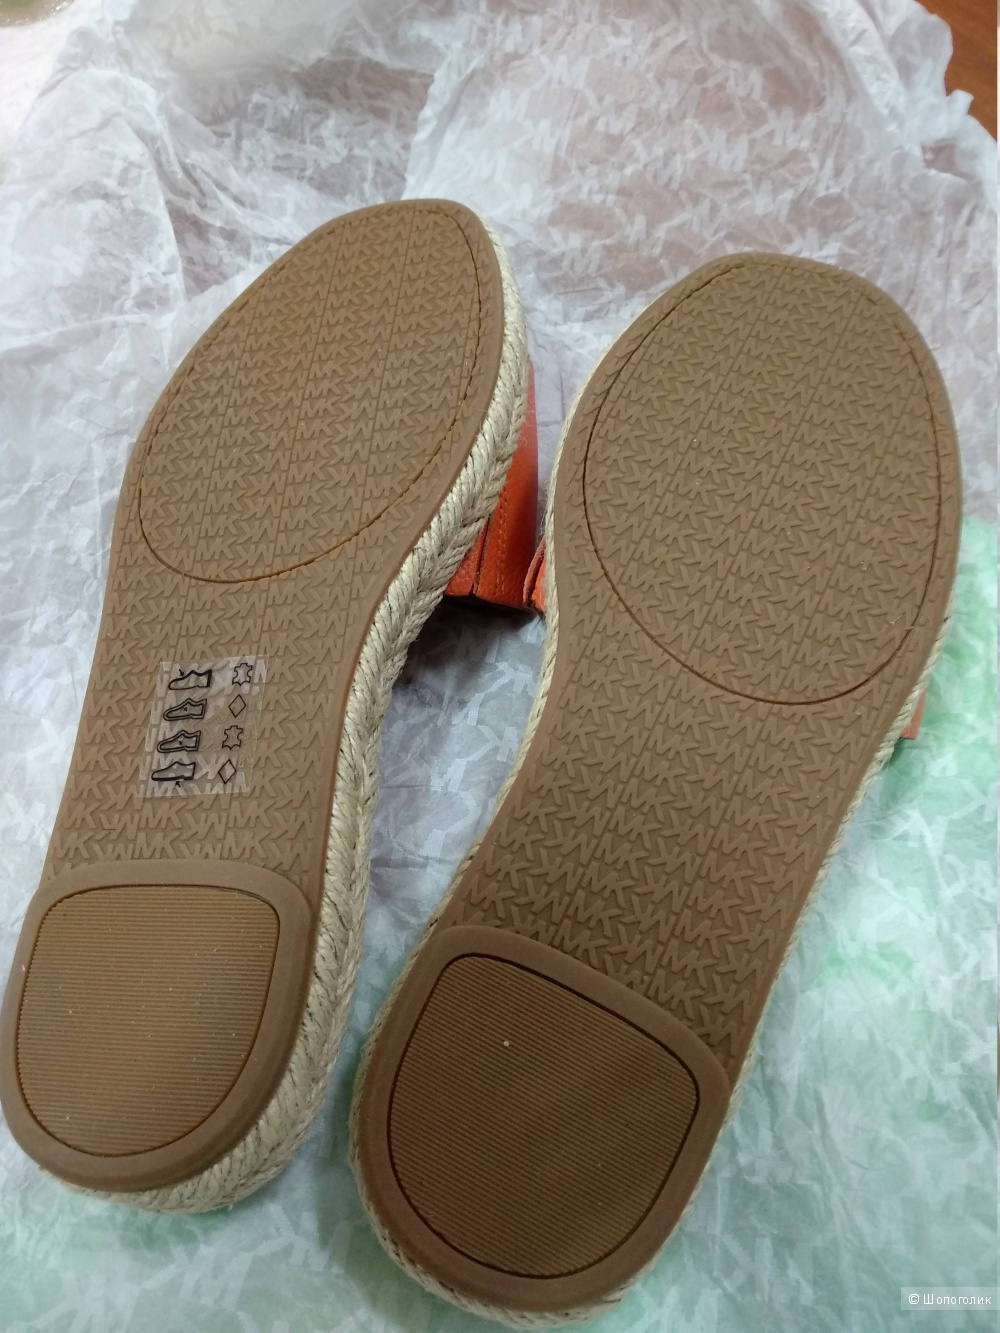 MICHAEL KORS Leather Slide размер US6(36)